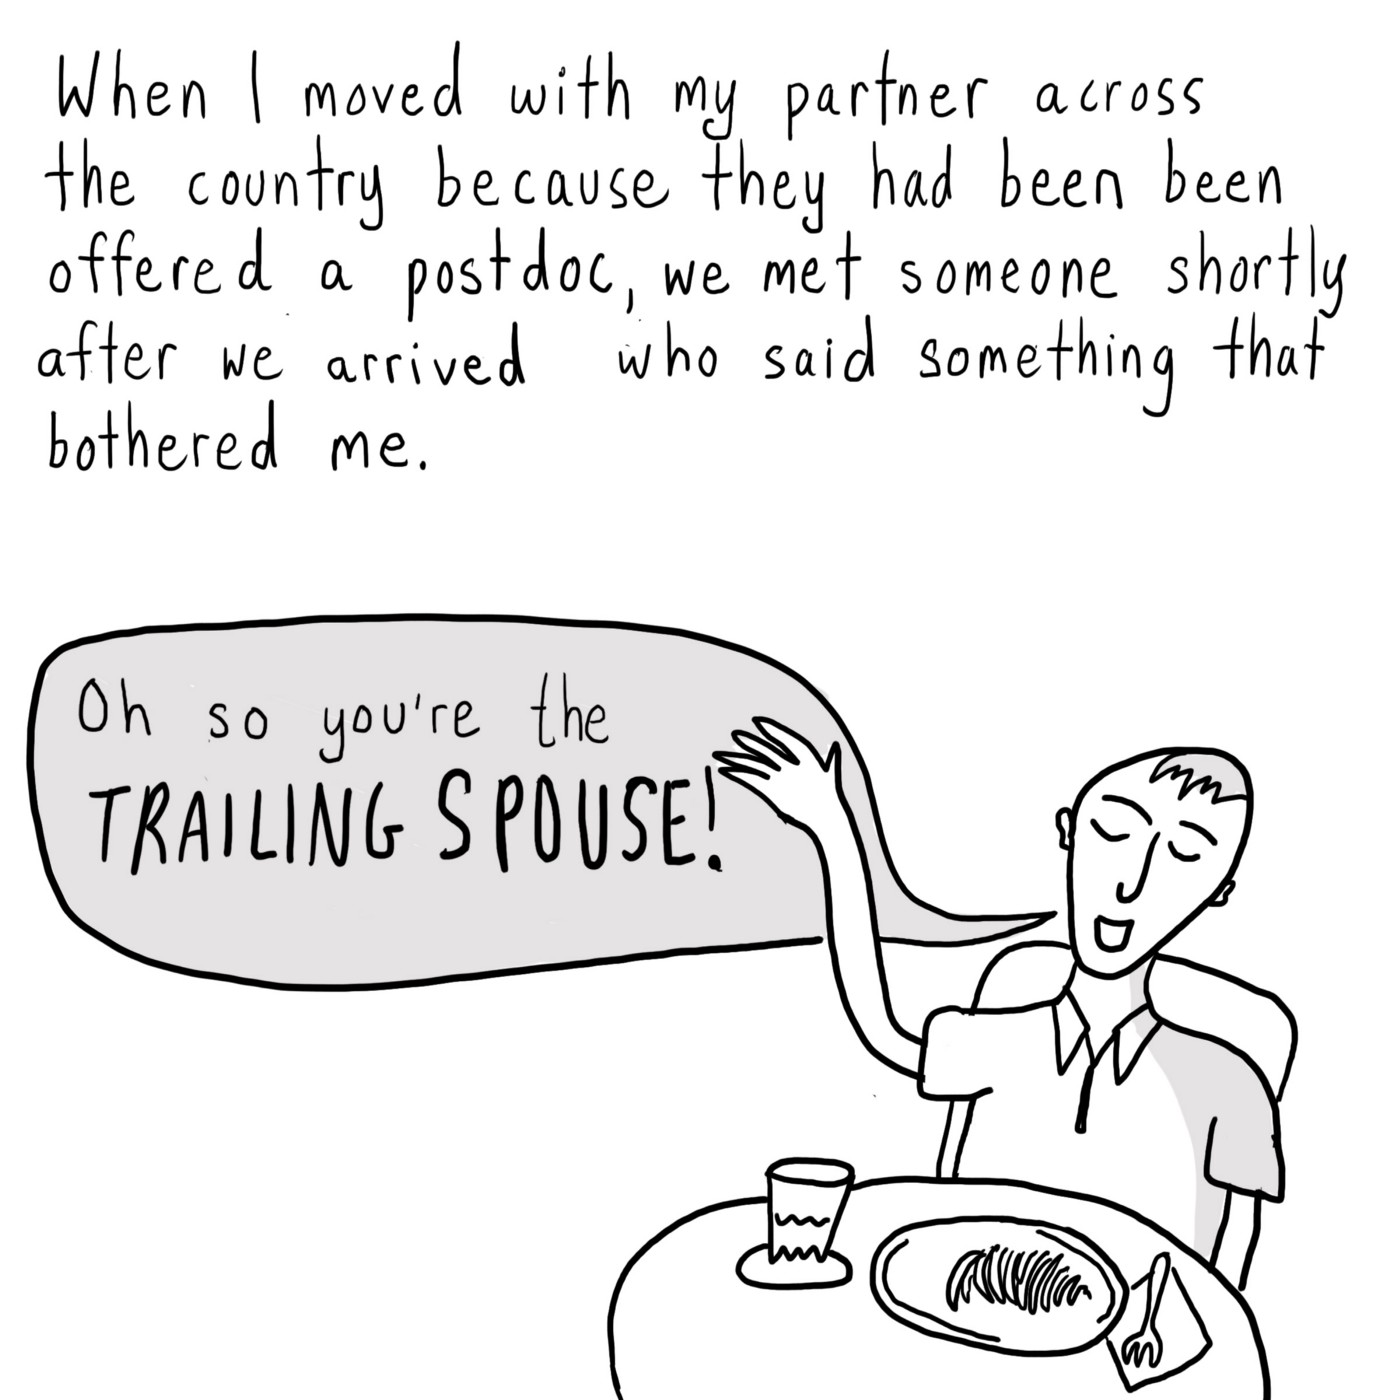 """Text: When I moved with my partner across the country because they had been offered a postdoc, we met someone shortly after we arrived who said something that bothered me. [A person at a small cafe table with a meal on it, waving his hand in the air. A speech bubble coming from his mouth says, """"Oh, so you're the trailing spouse!""""]"""